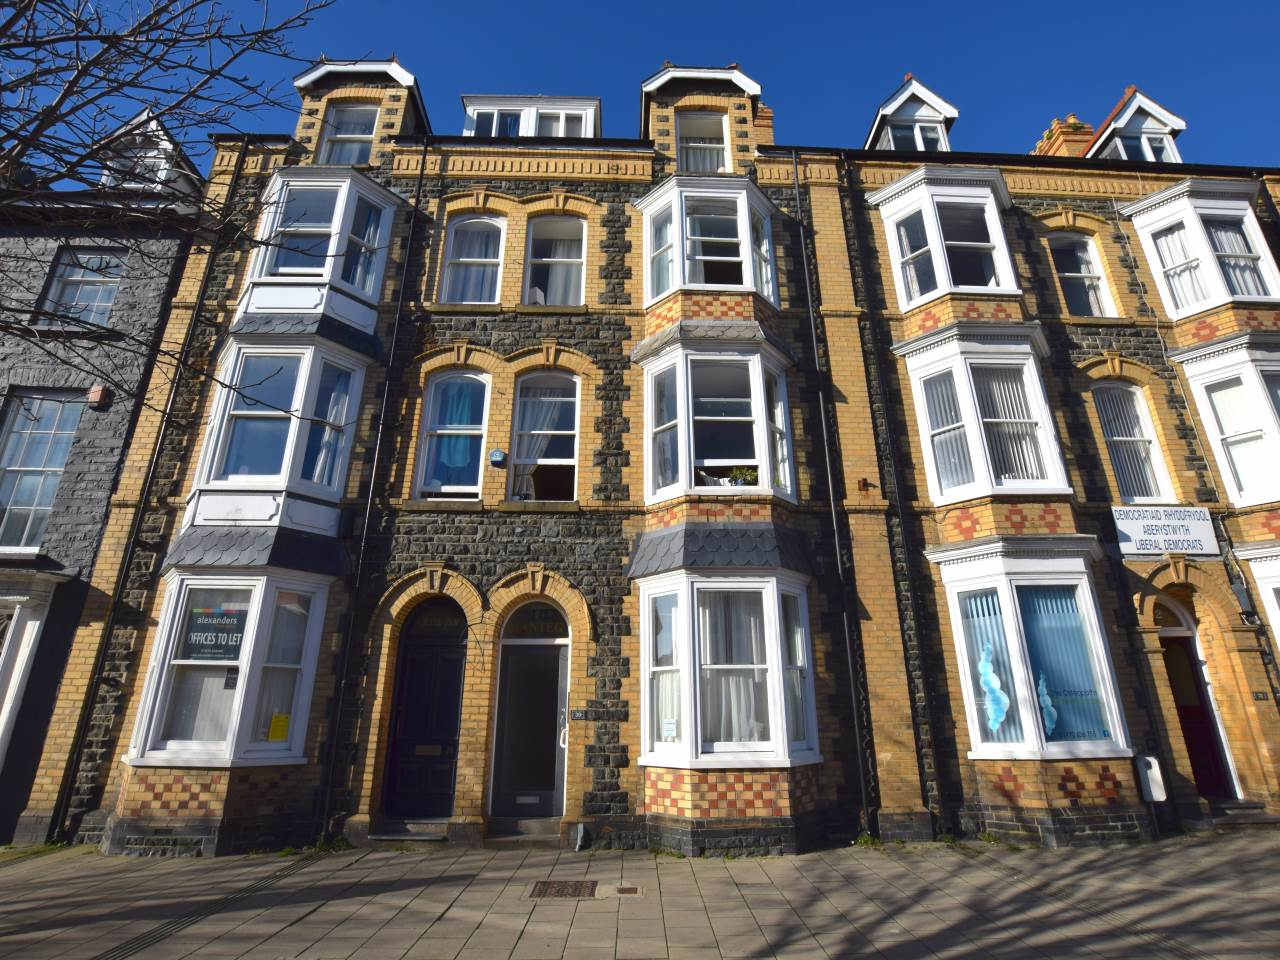 4 bed flat to rent in Aberystwyth, Ceredigion, SY23